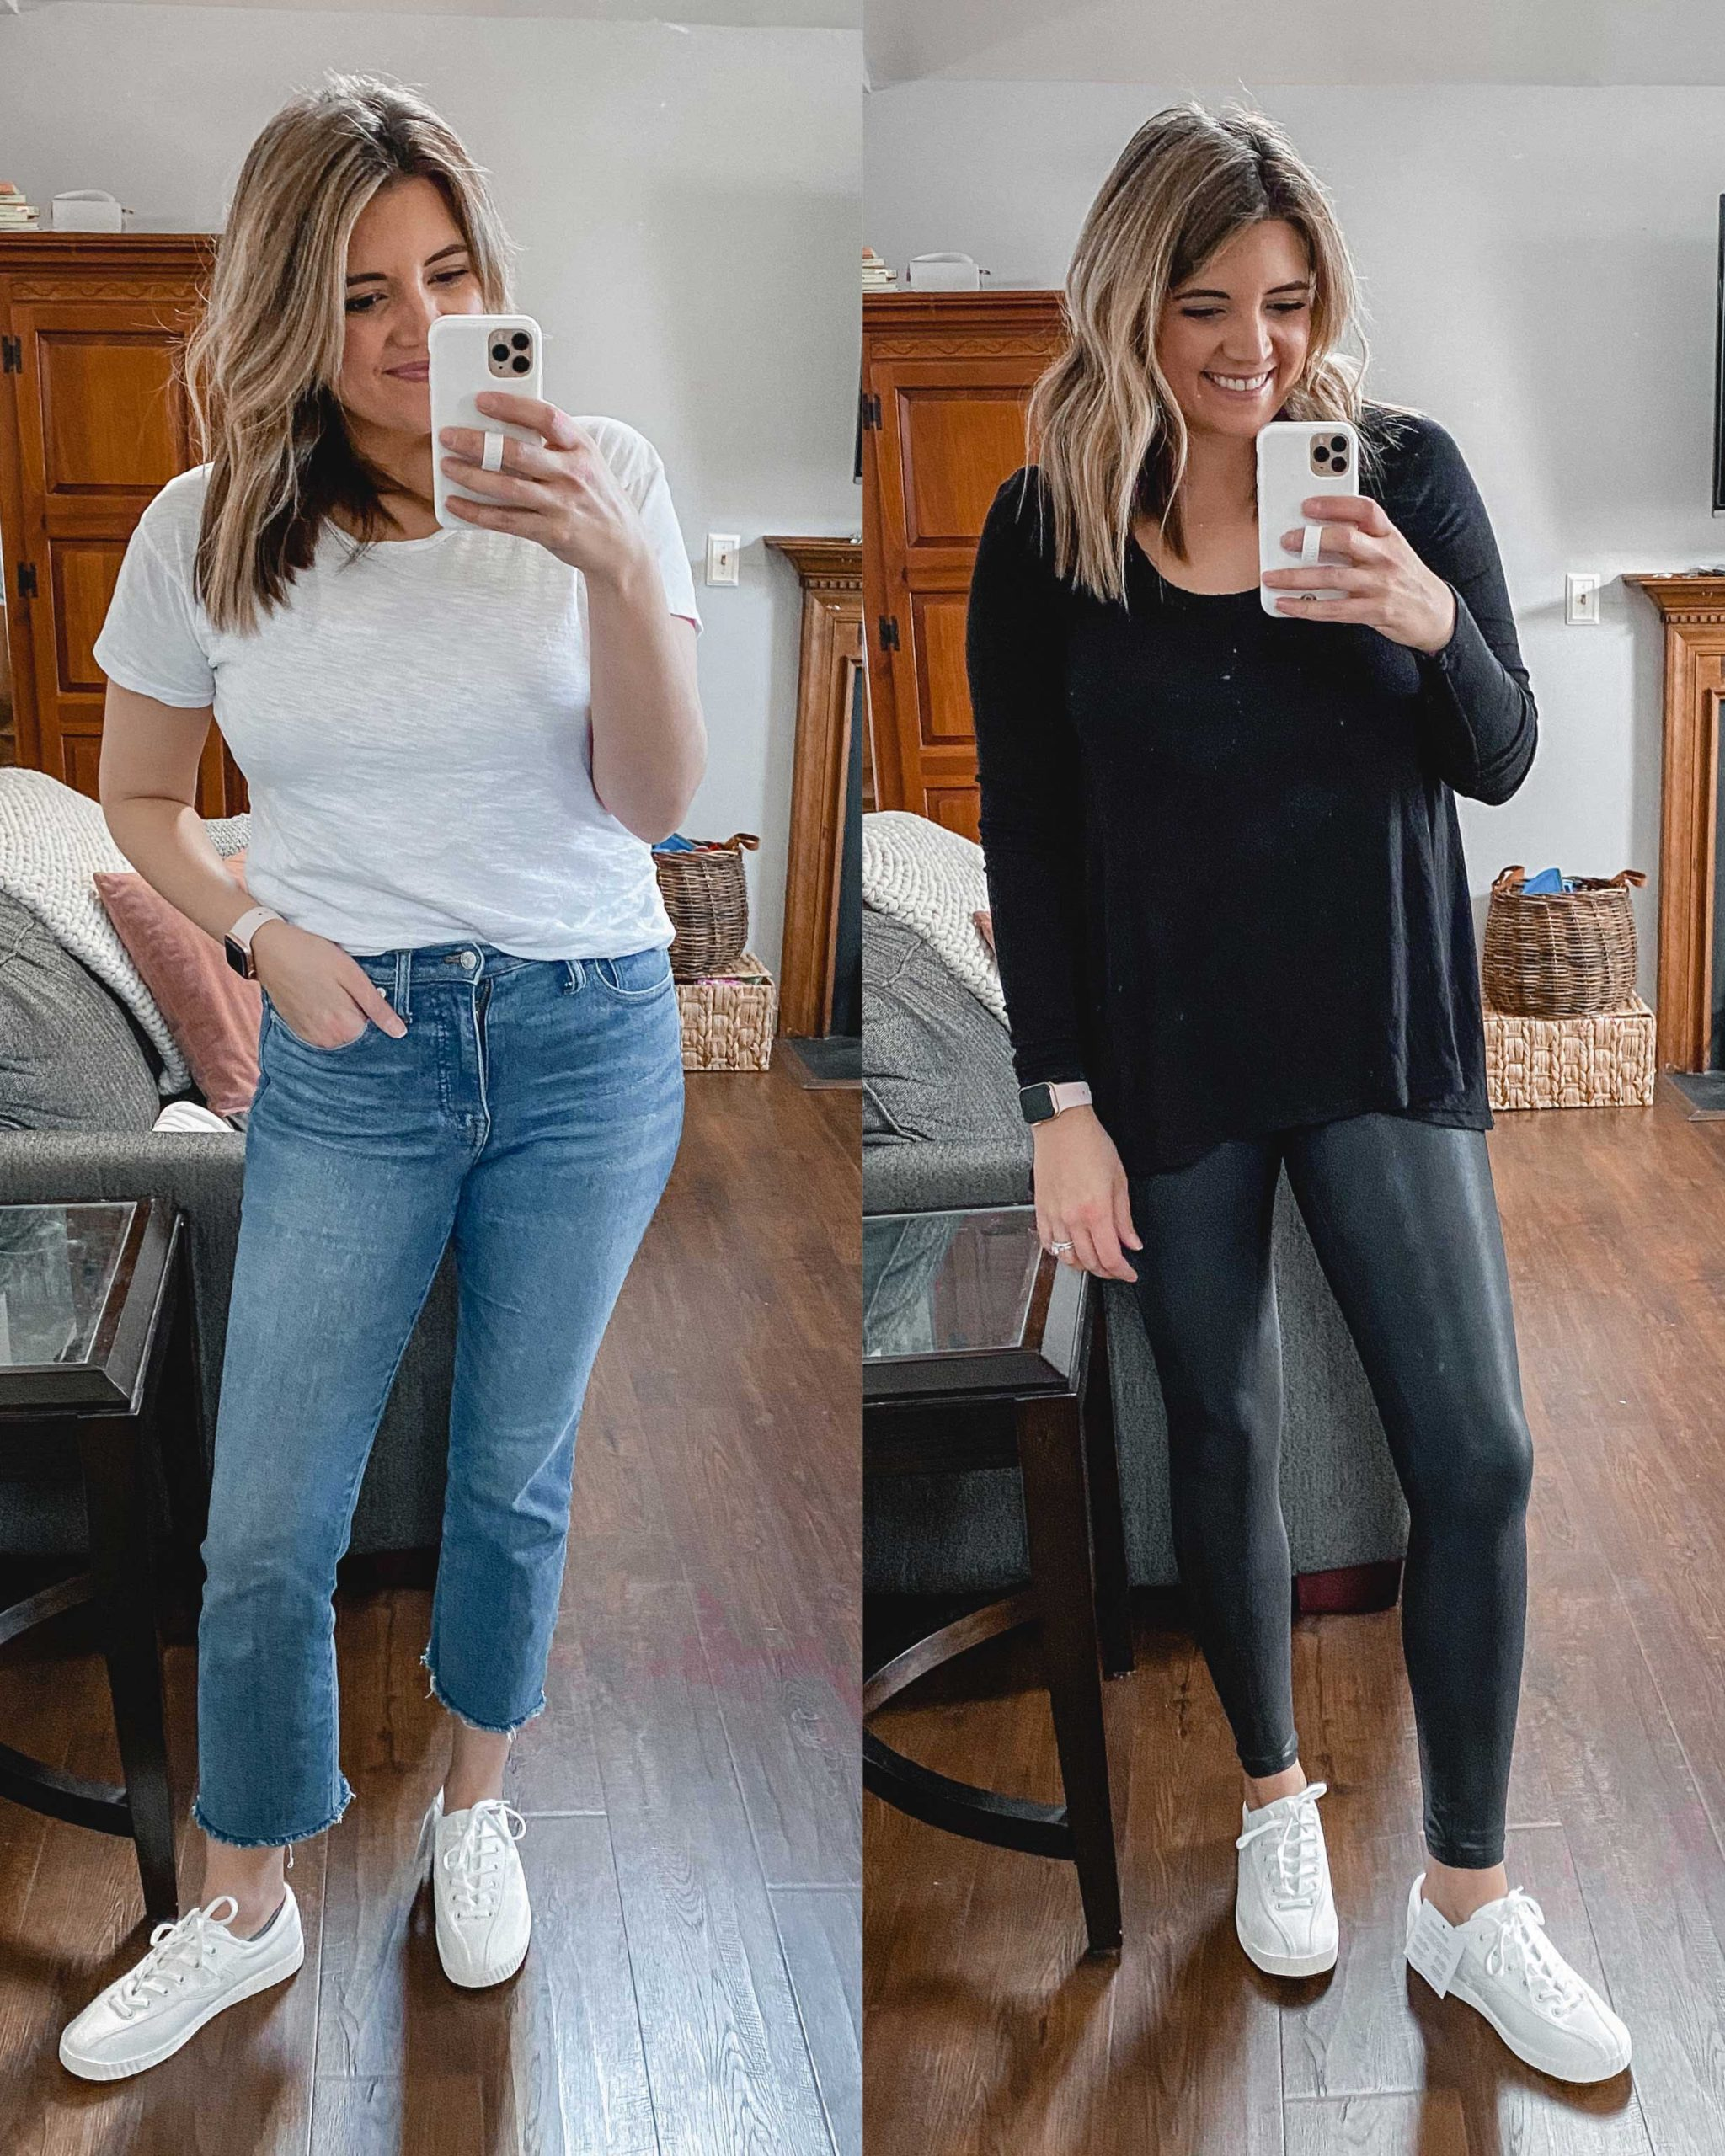 Virginia blogger, Lauren Dix, tries on 10 different pairs of white sneakers for the ultimate white sneaker review! She wears the Tretorn Nylite Plus sneakers with both jeans and leggings!